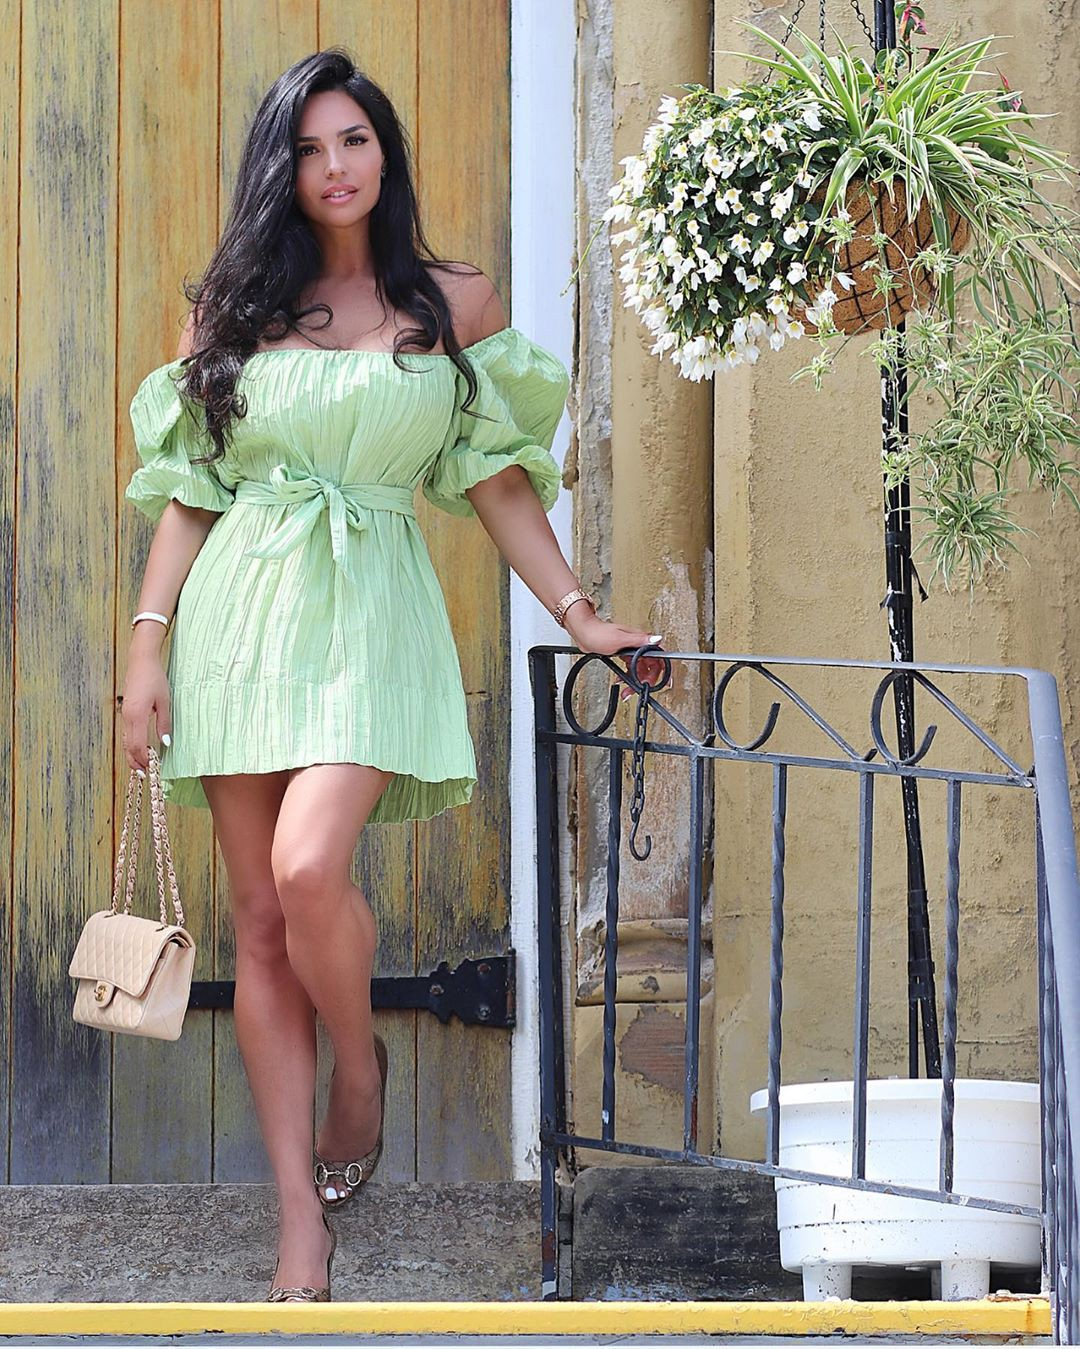 Yellow and green cocktail dress, sexy legs